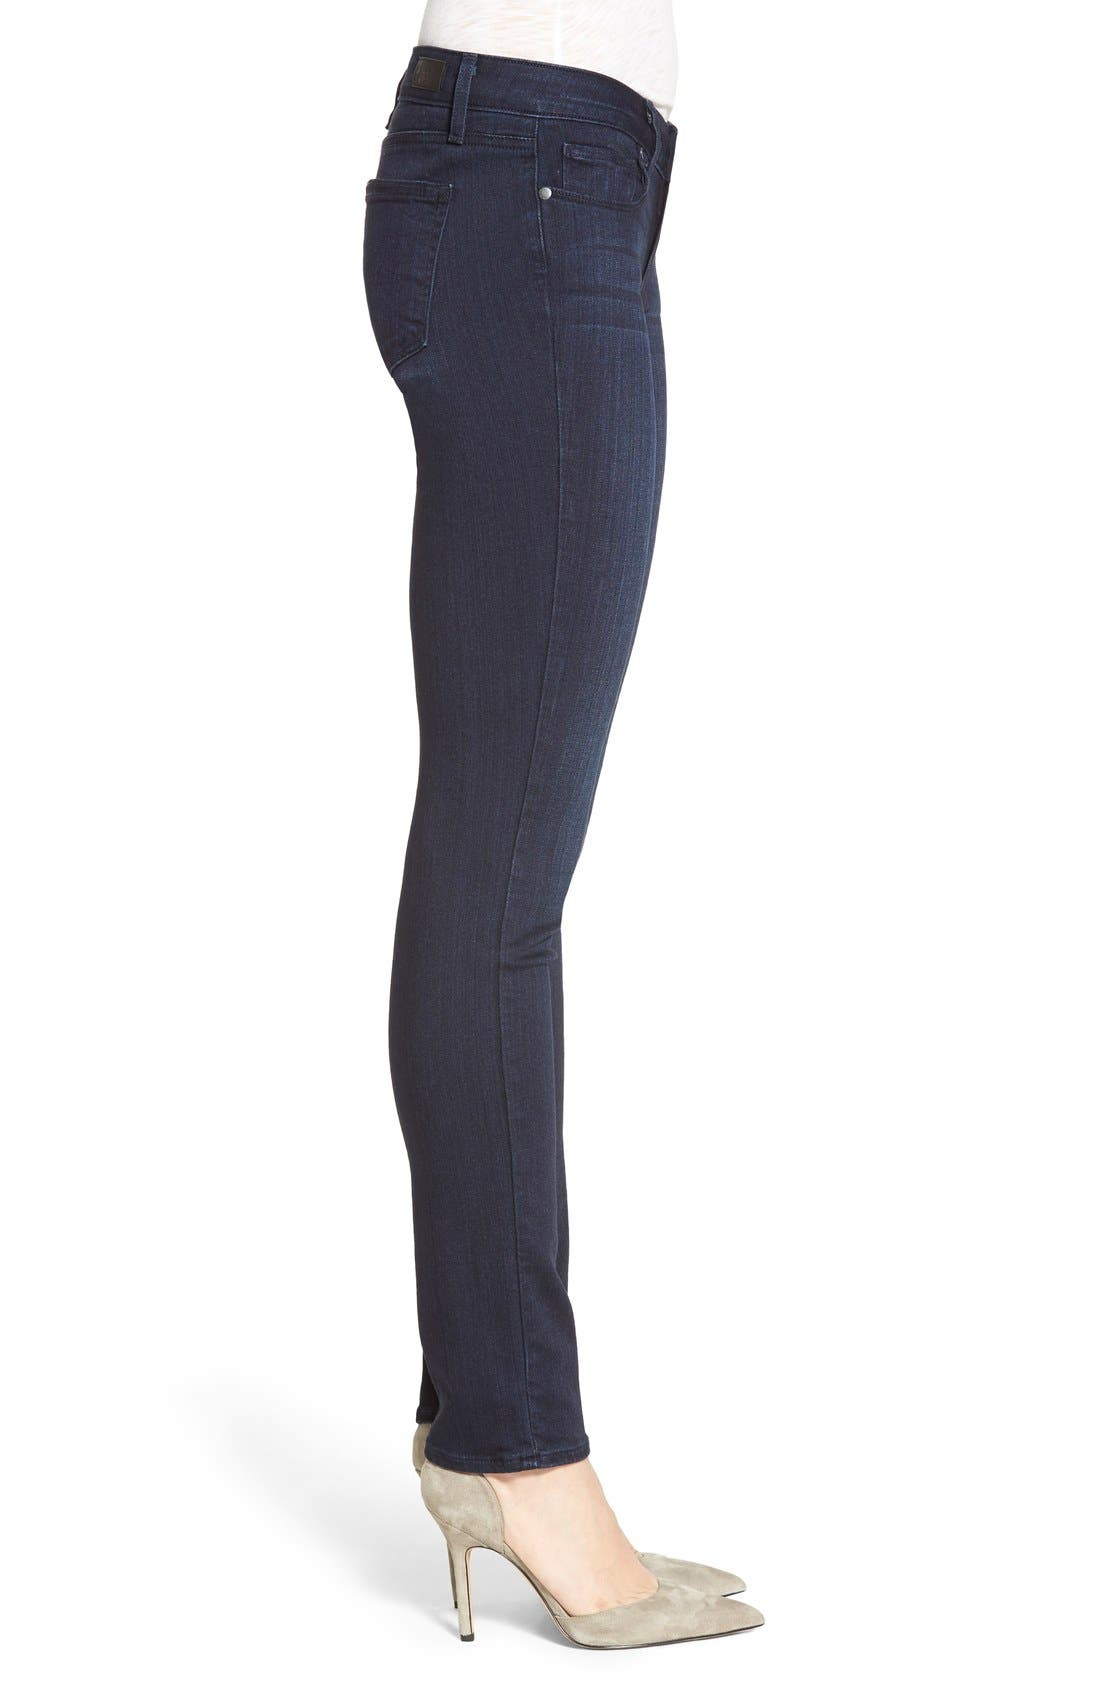 Alternate Image 3  - PAIGE 'Skyline' Skinny Jeans (Everdeen) (Nordstrom Exclusive)